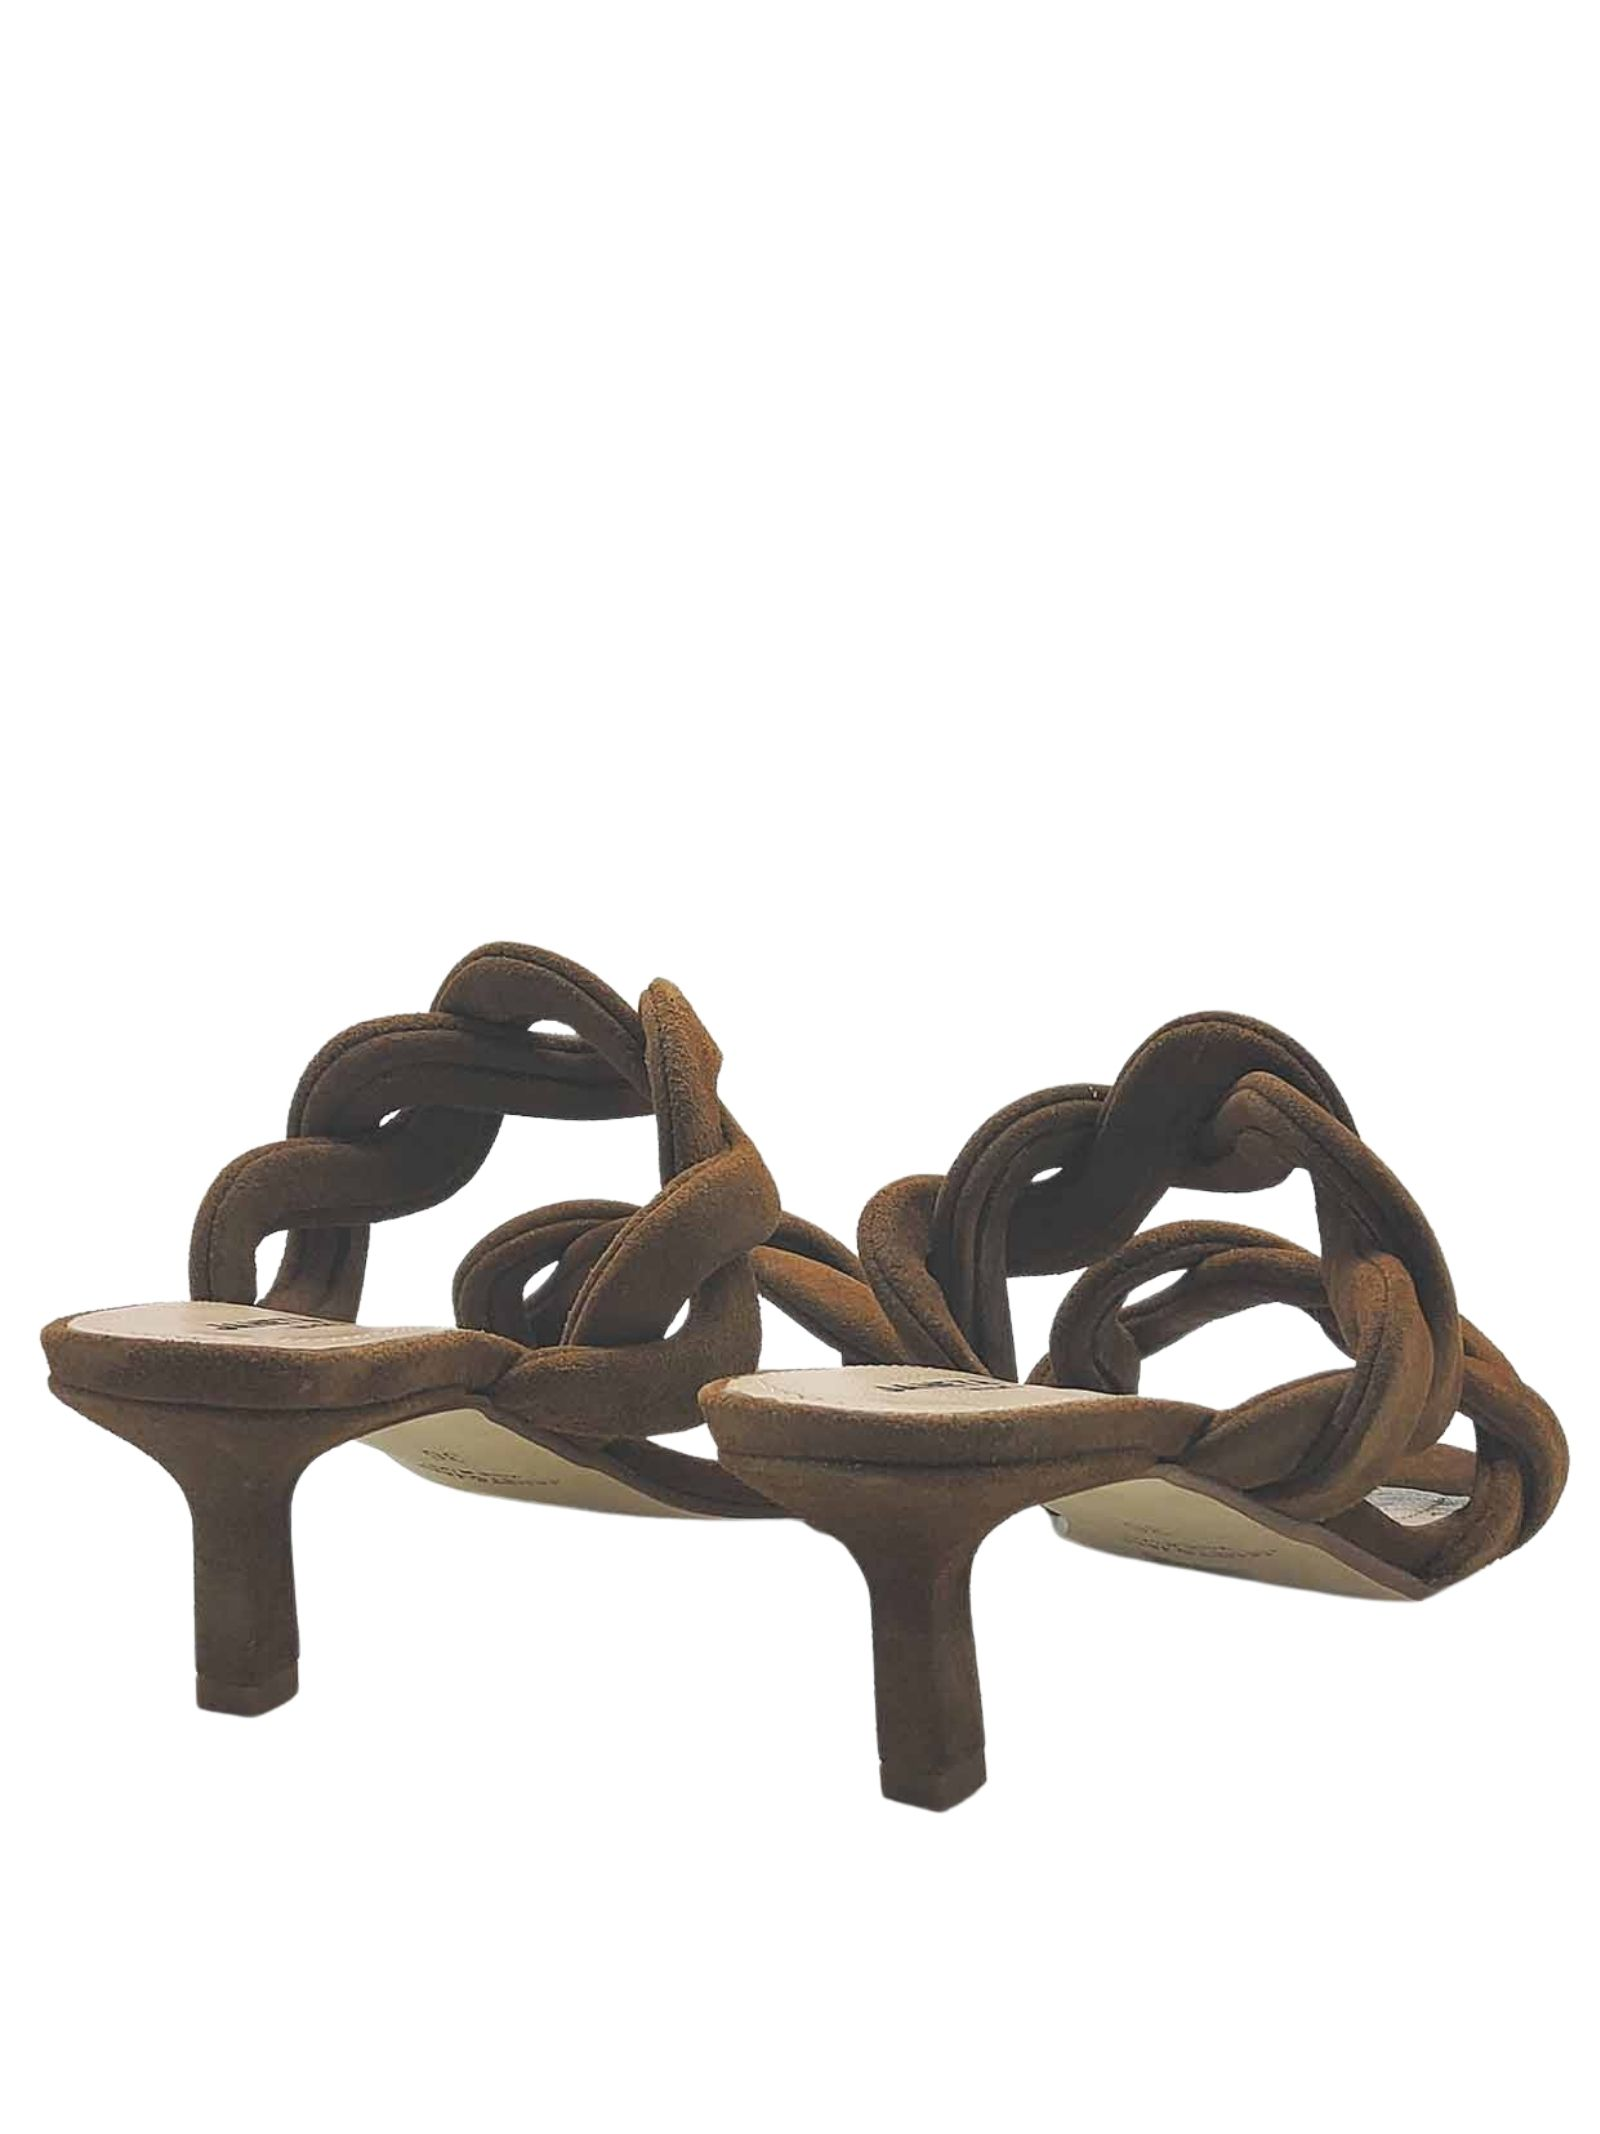 Women's Shoes Sandals in Leather Suede with Double Braided Band Heel 60 Janet & Janet   Sandals   01153014